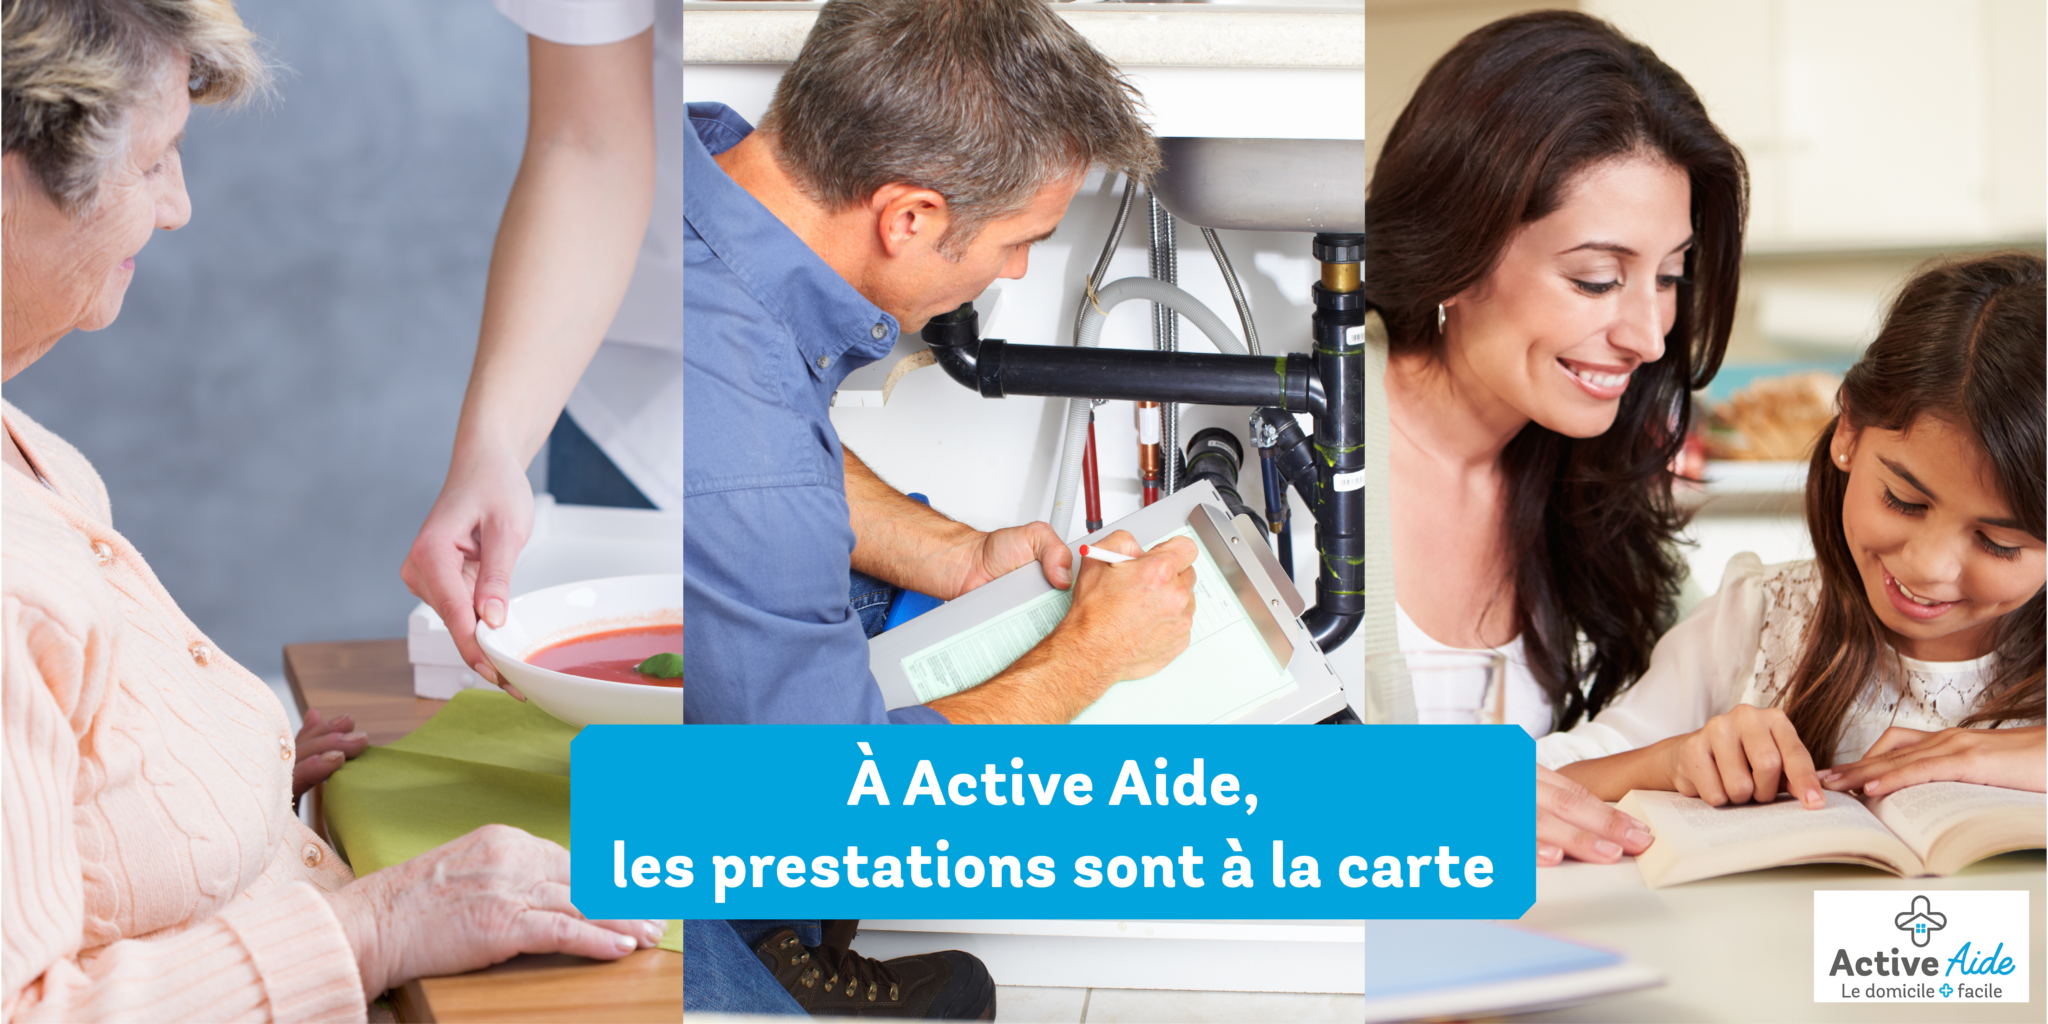 Active Aide : des prestations à la carte